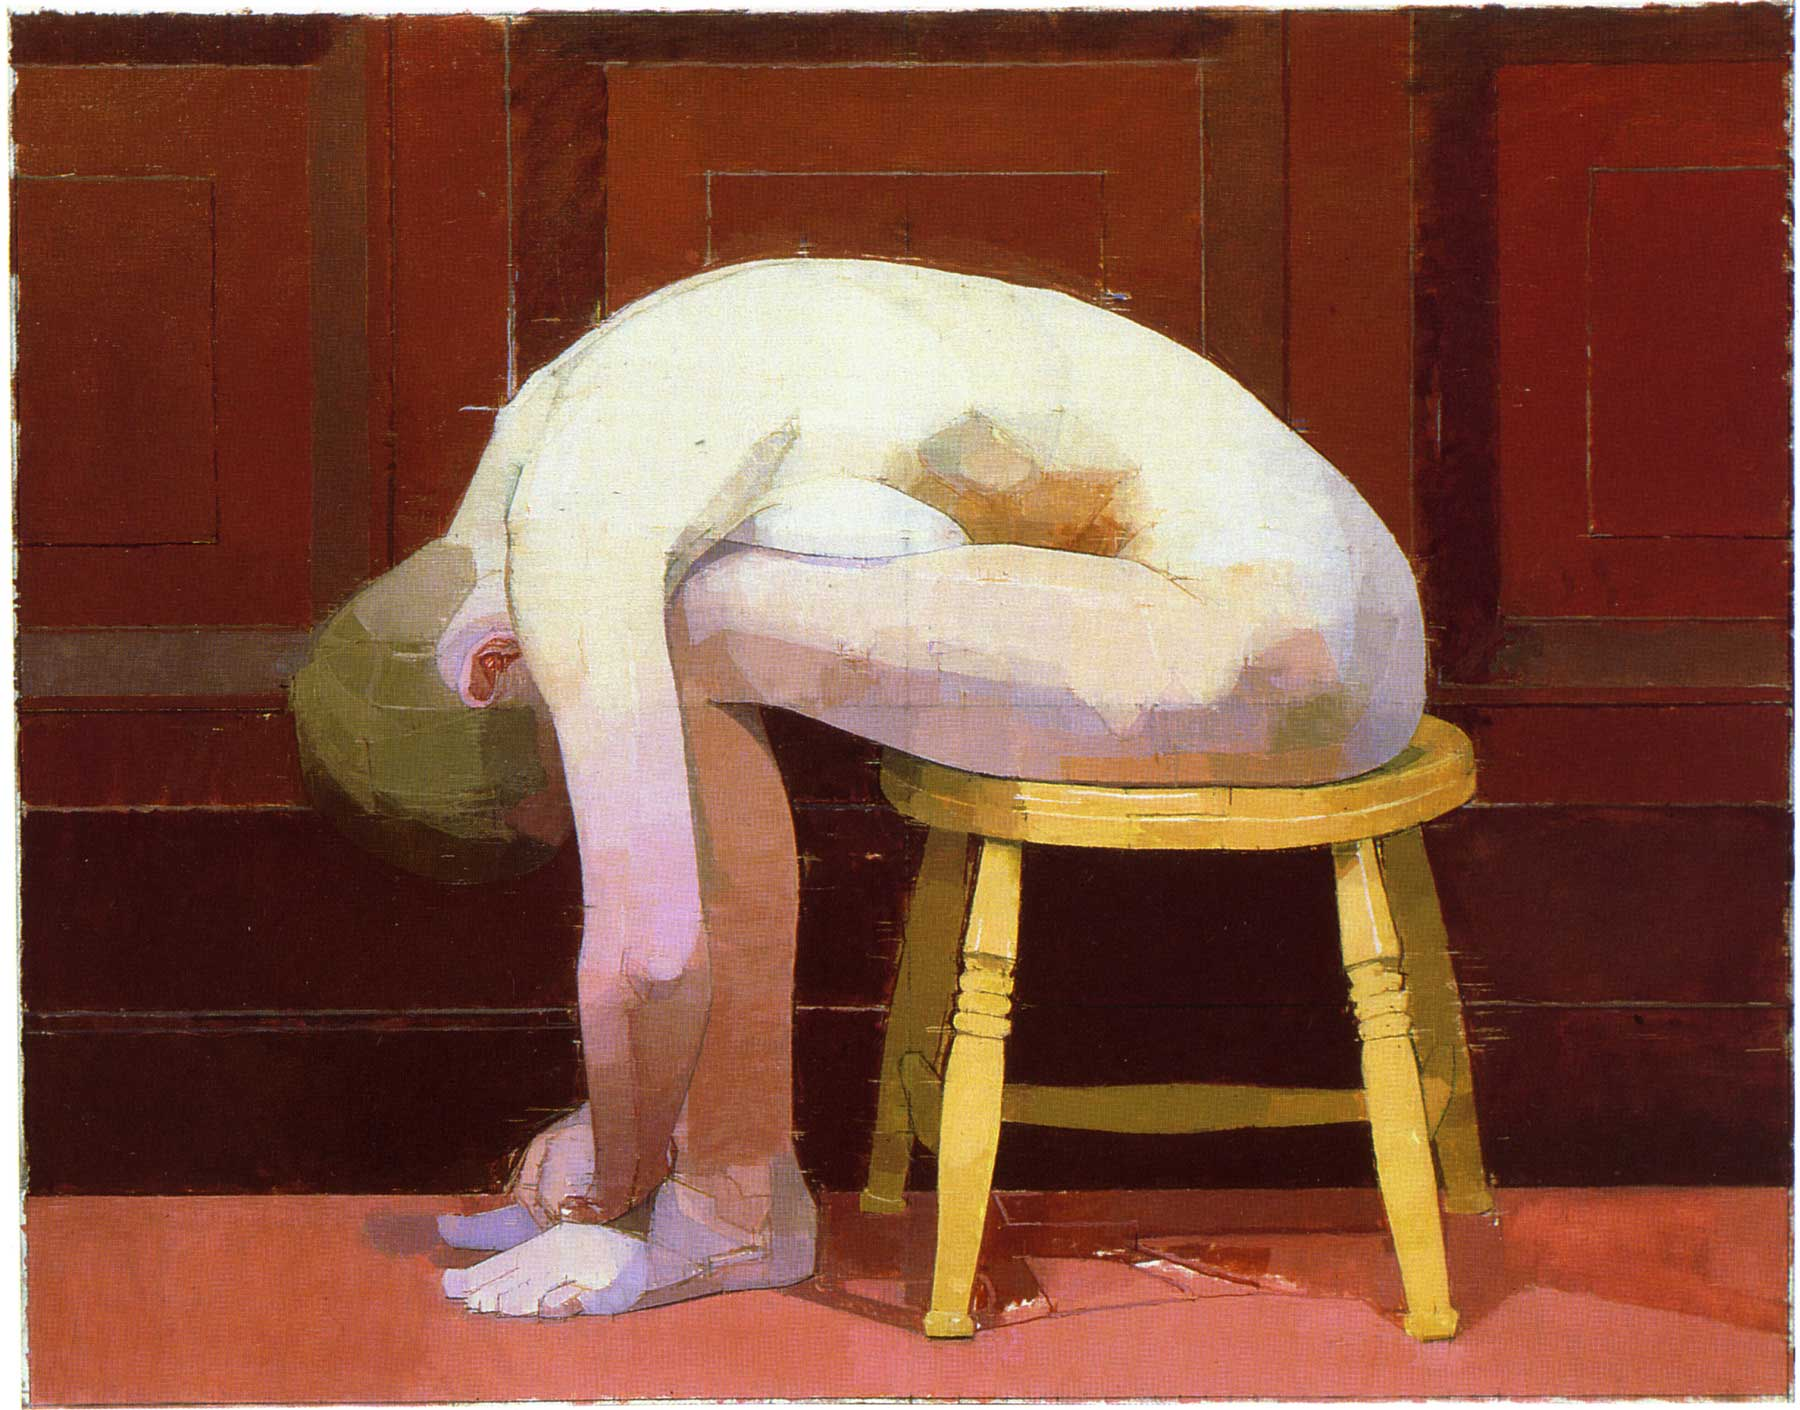 Euan Uglow Curled nude on a stool (1982-3). ©Euan Uglow